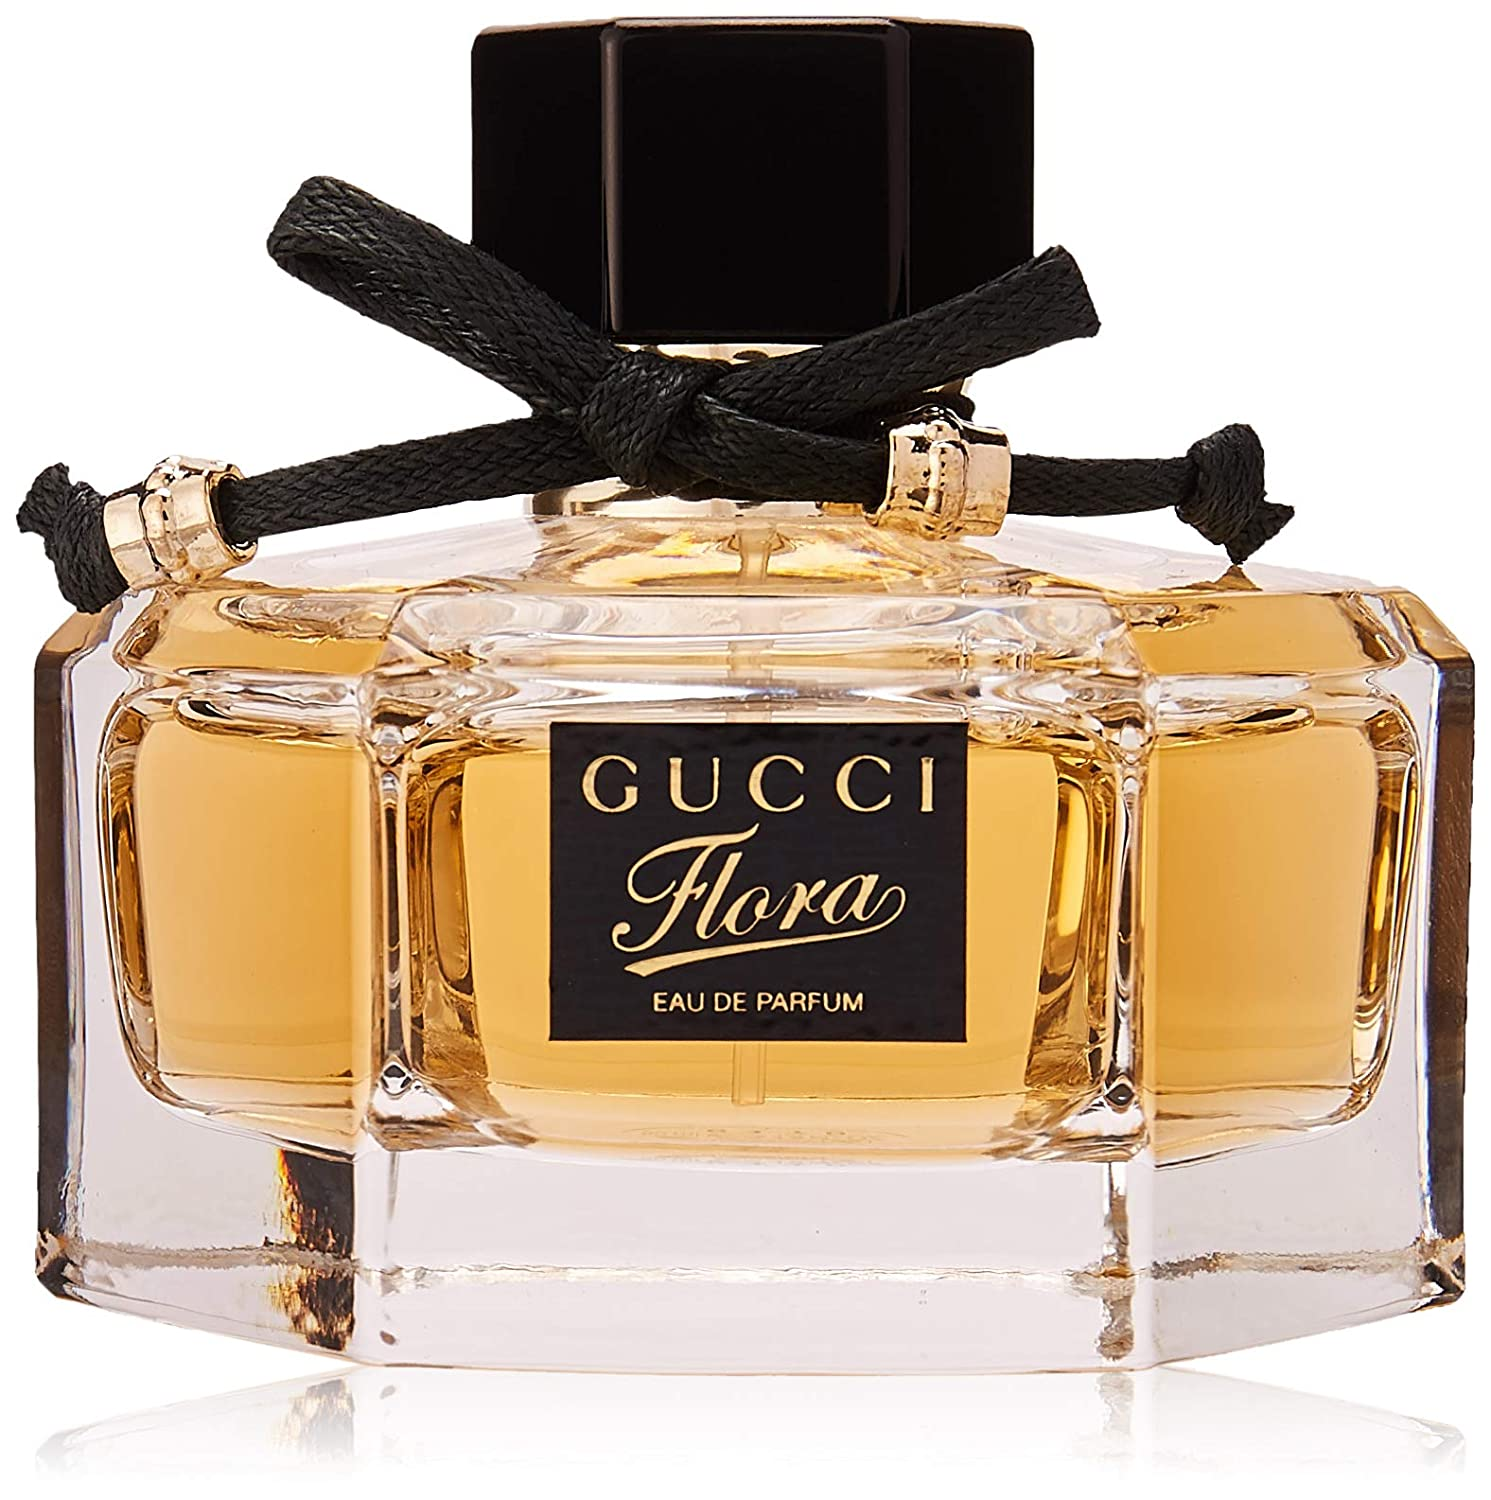 e8c8b15b83c Gucci Flora Eau de Parfum - 75 ml  Amazon.co.uk  Beauty